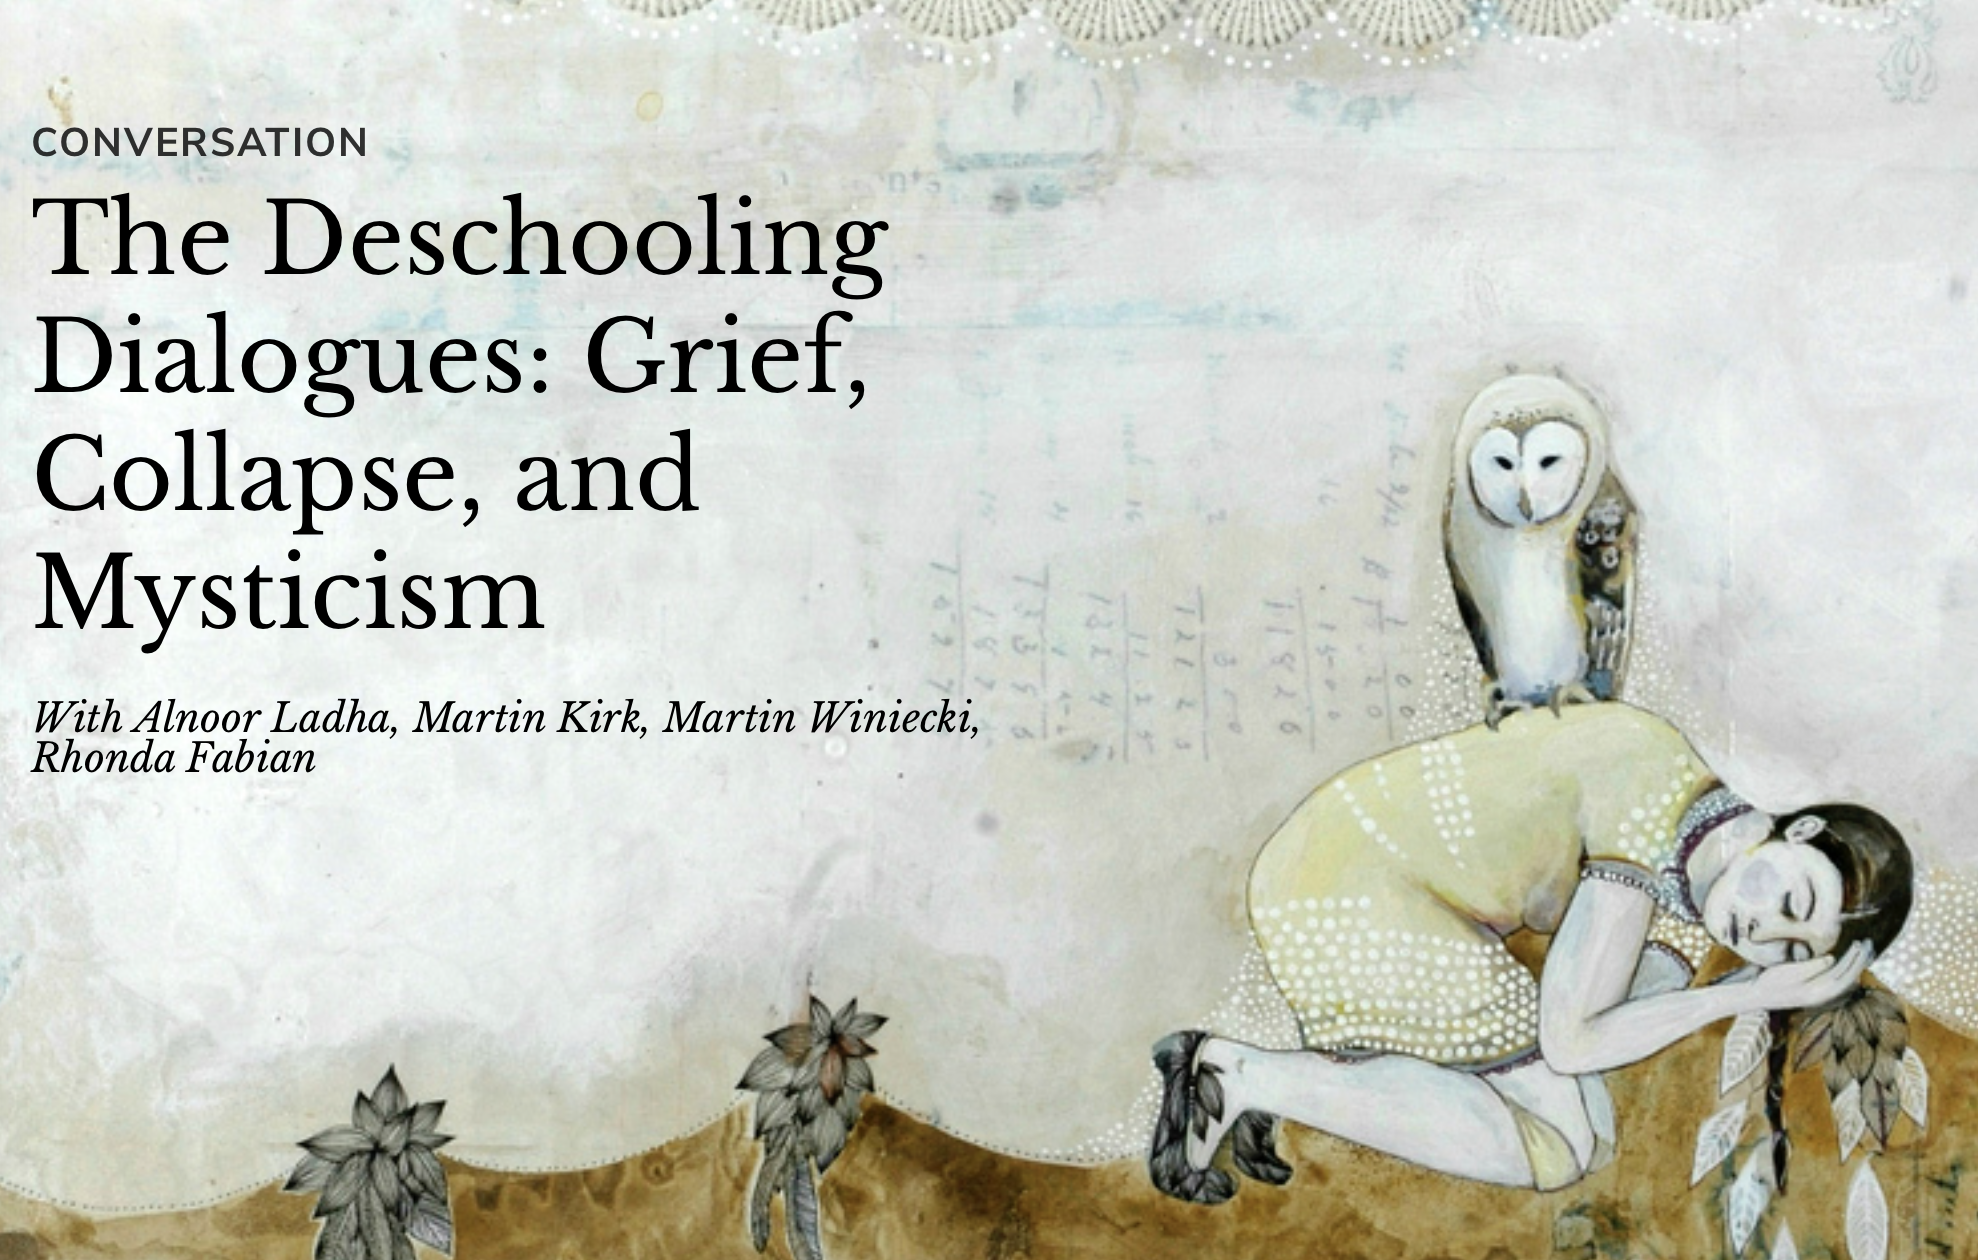 The Deschooling Dialogues: Grief, Collapse and Mysticism